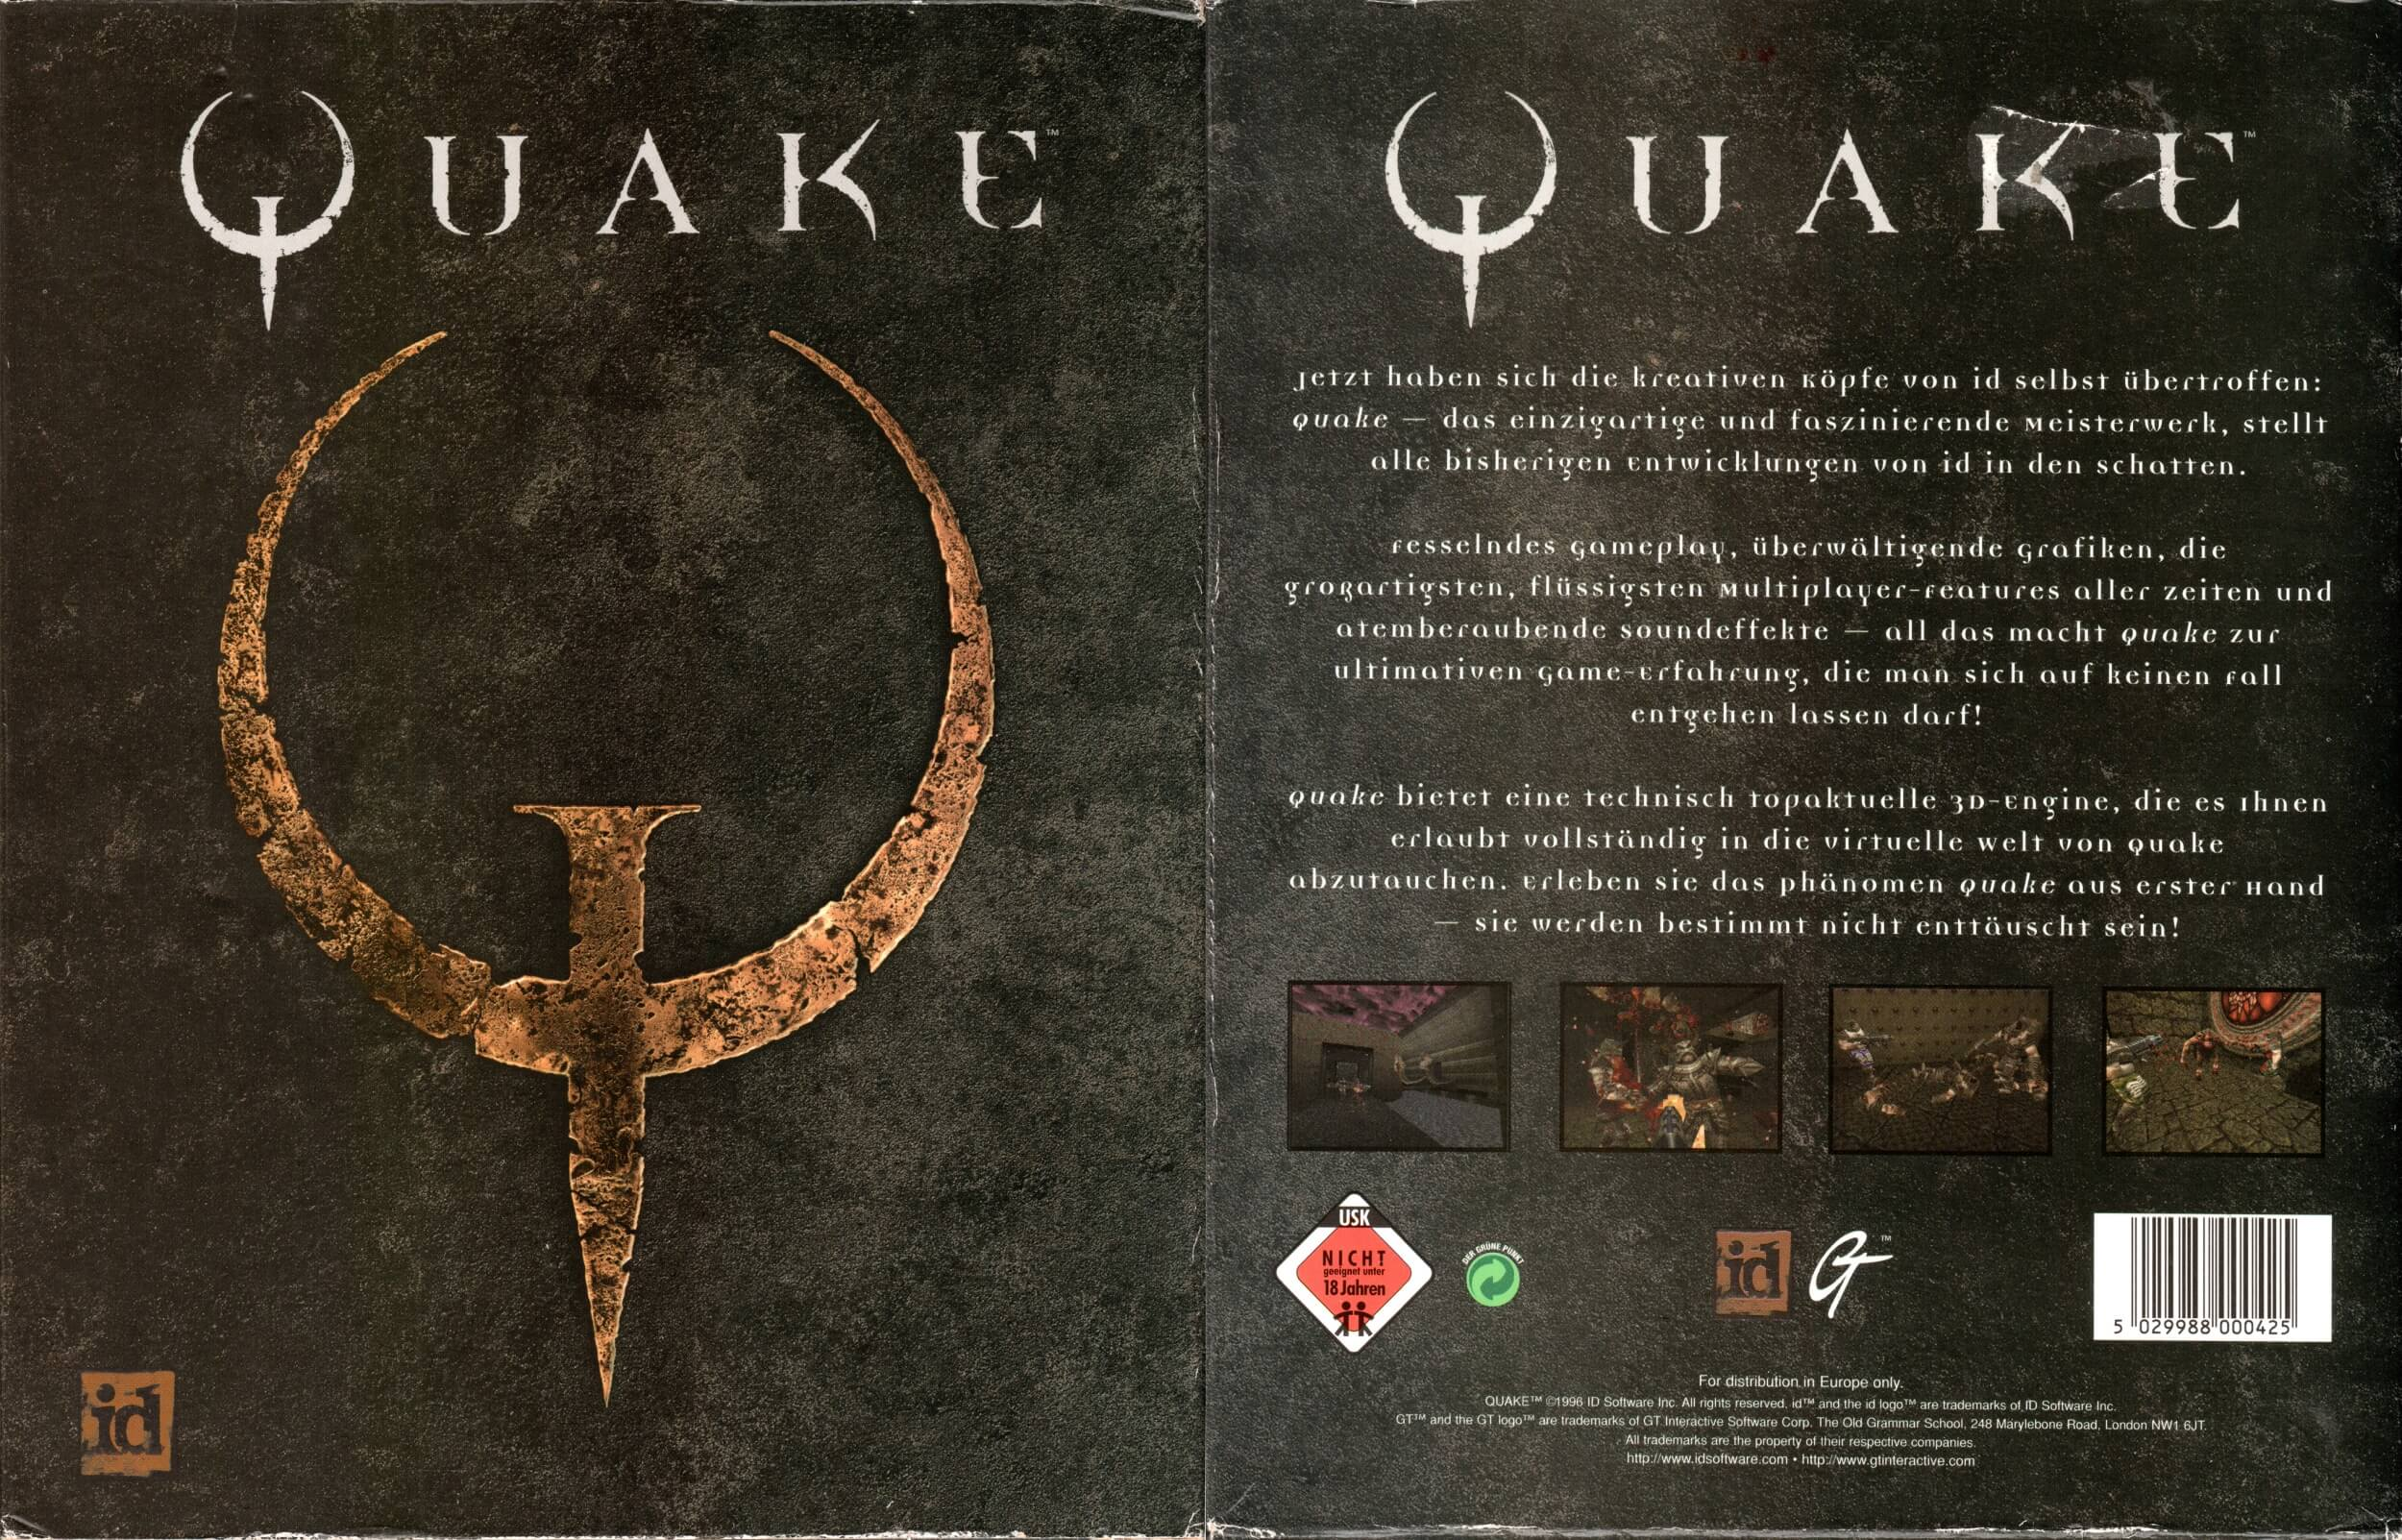 Download your free copy of Quake 1 this weekend courtesy of Bethesda